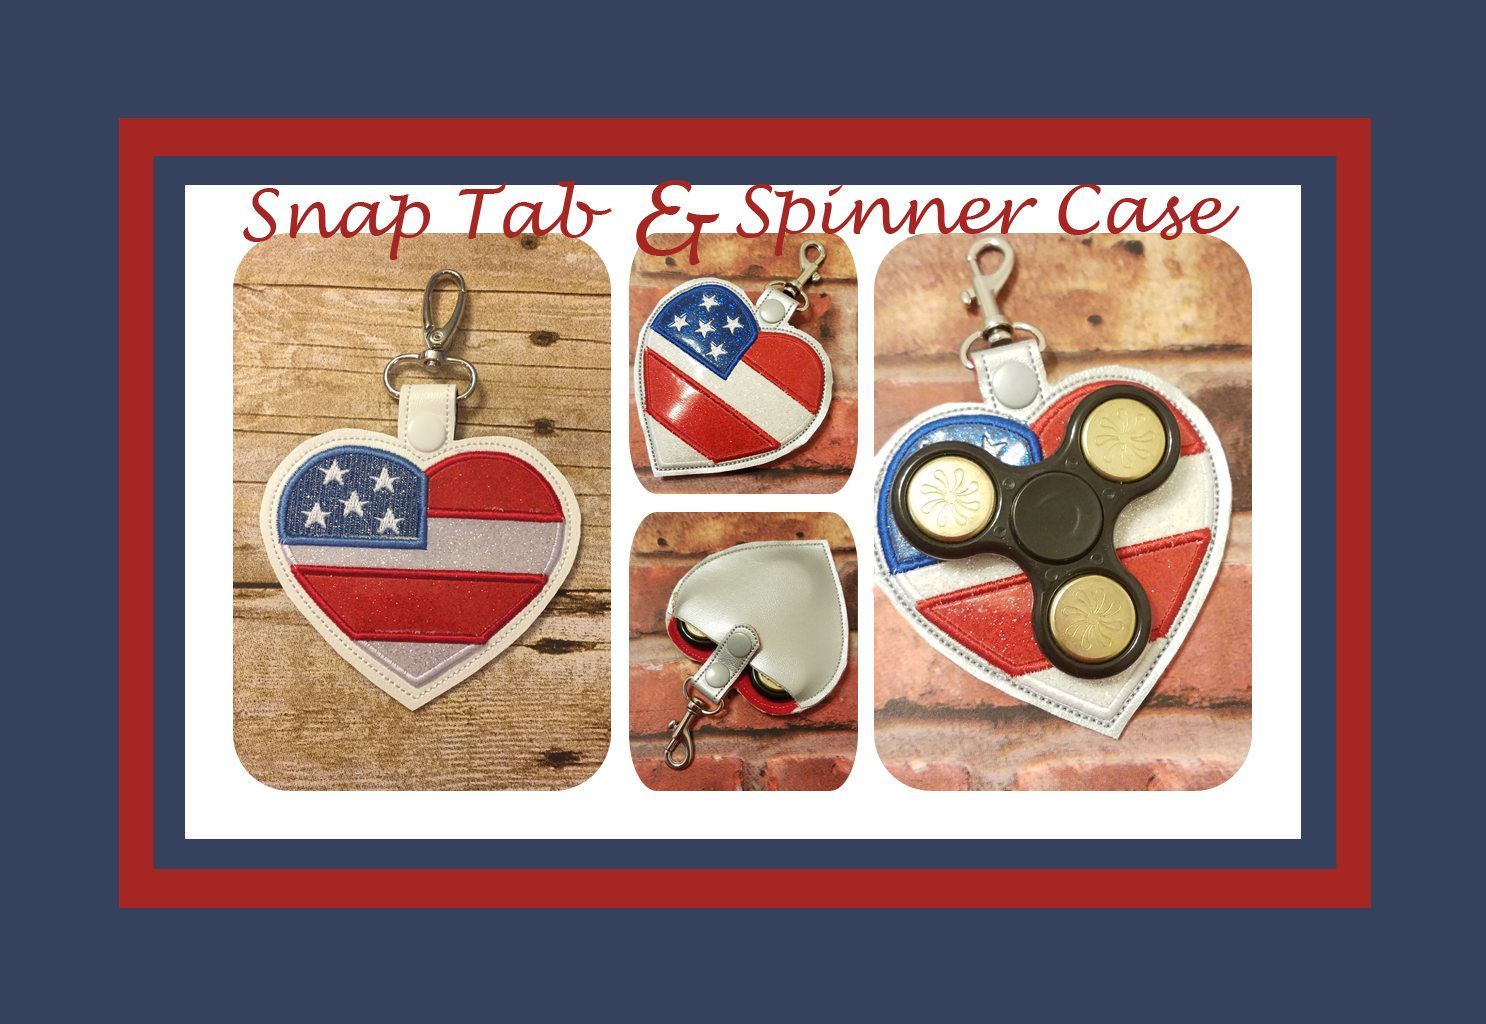 COMBO ITH Embroidery Designs, American Heart Spinner case for 4.5, 5, 5X7, 6X10 hoops & SnapTab/Key Fob for 3.9, 4.5, 5, 5X7, 6X10 hoops by PrettyNStitches on Etsy